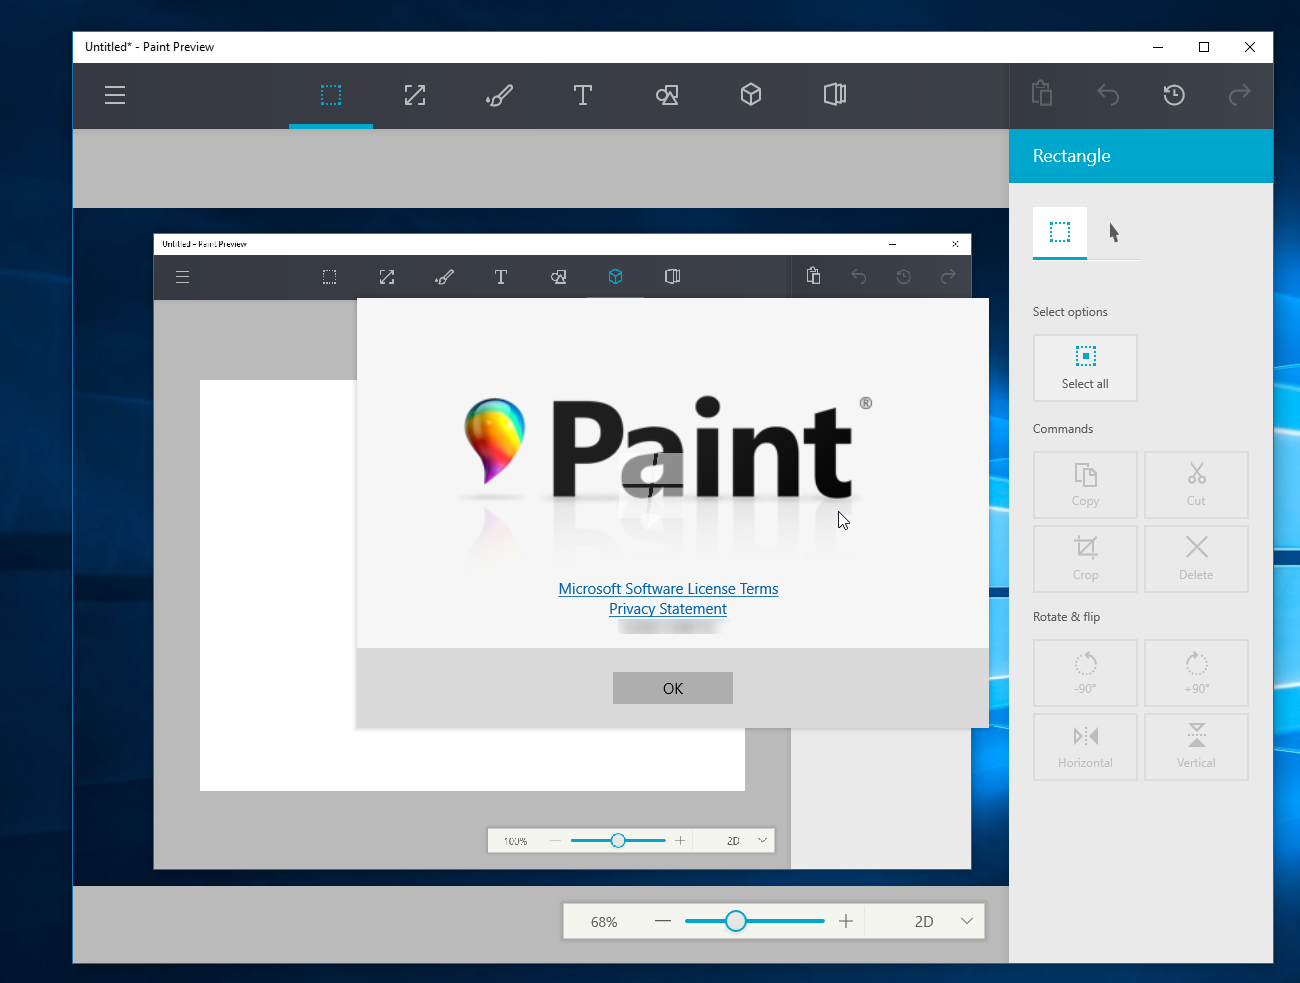 Microsoft could be modernizing Paint in Windows 8